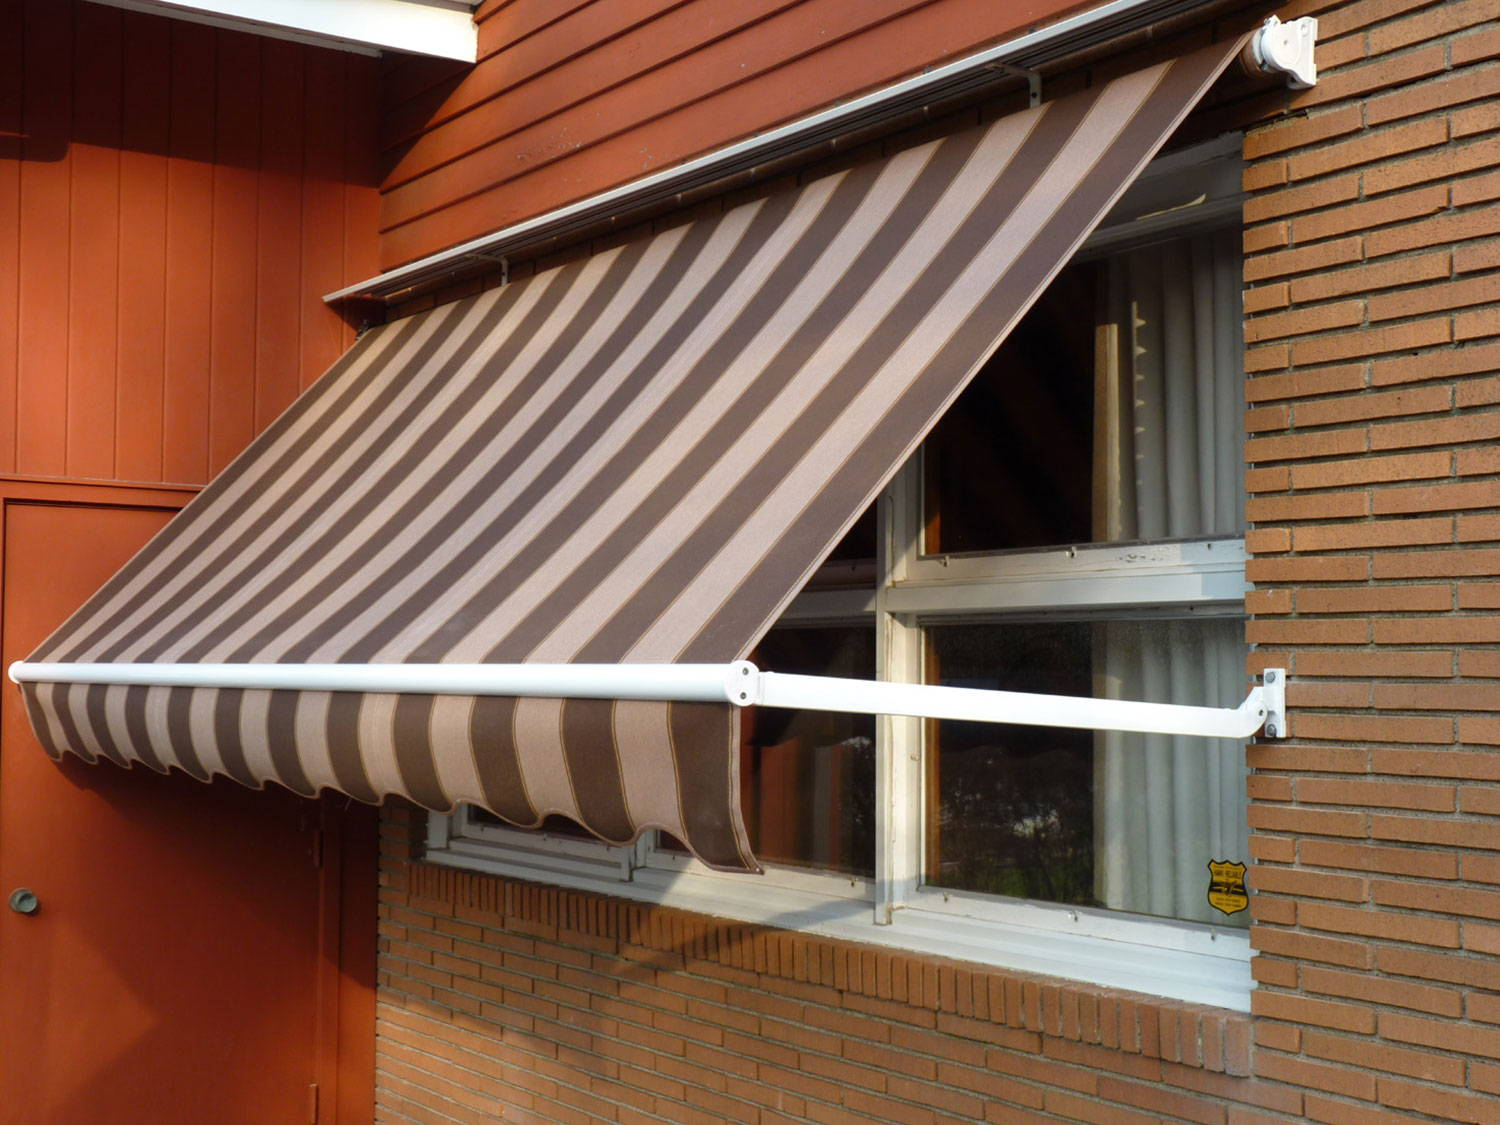 Windows Awning Systems | Alutex Shading Systems ...